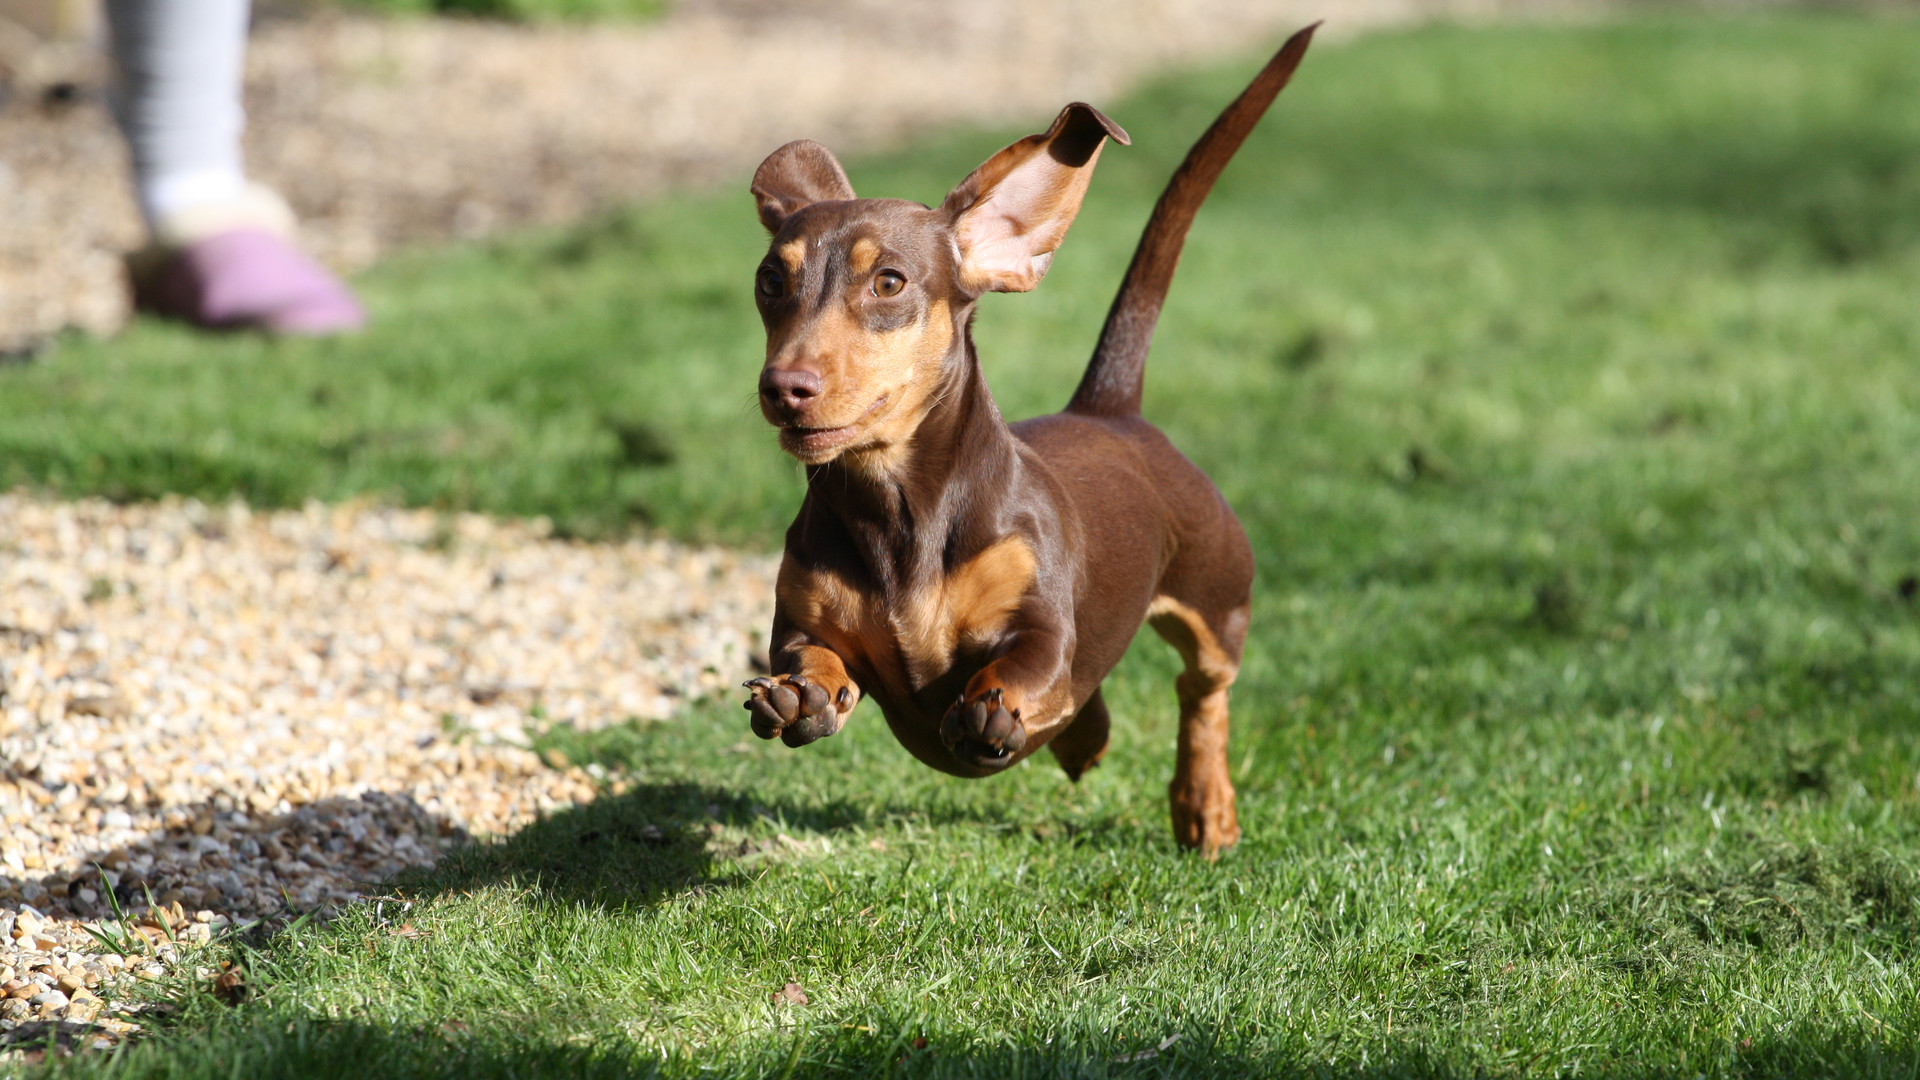 Fit miniature dachshund